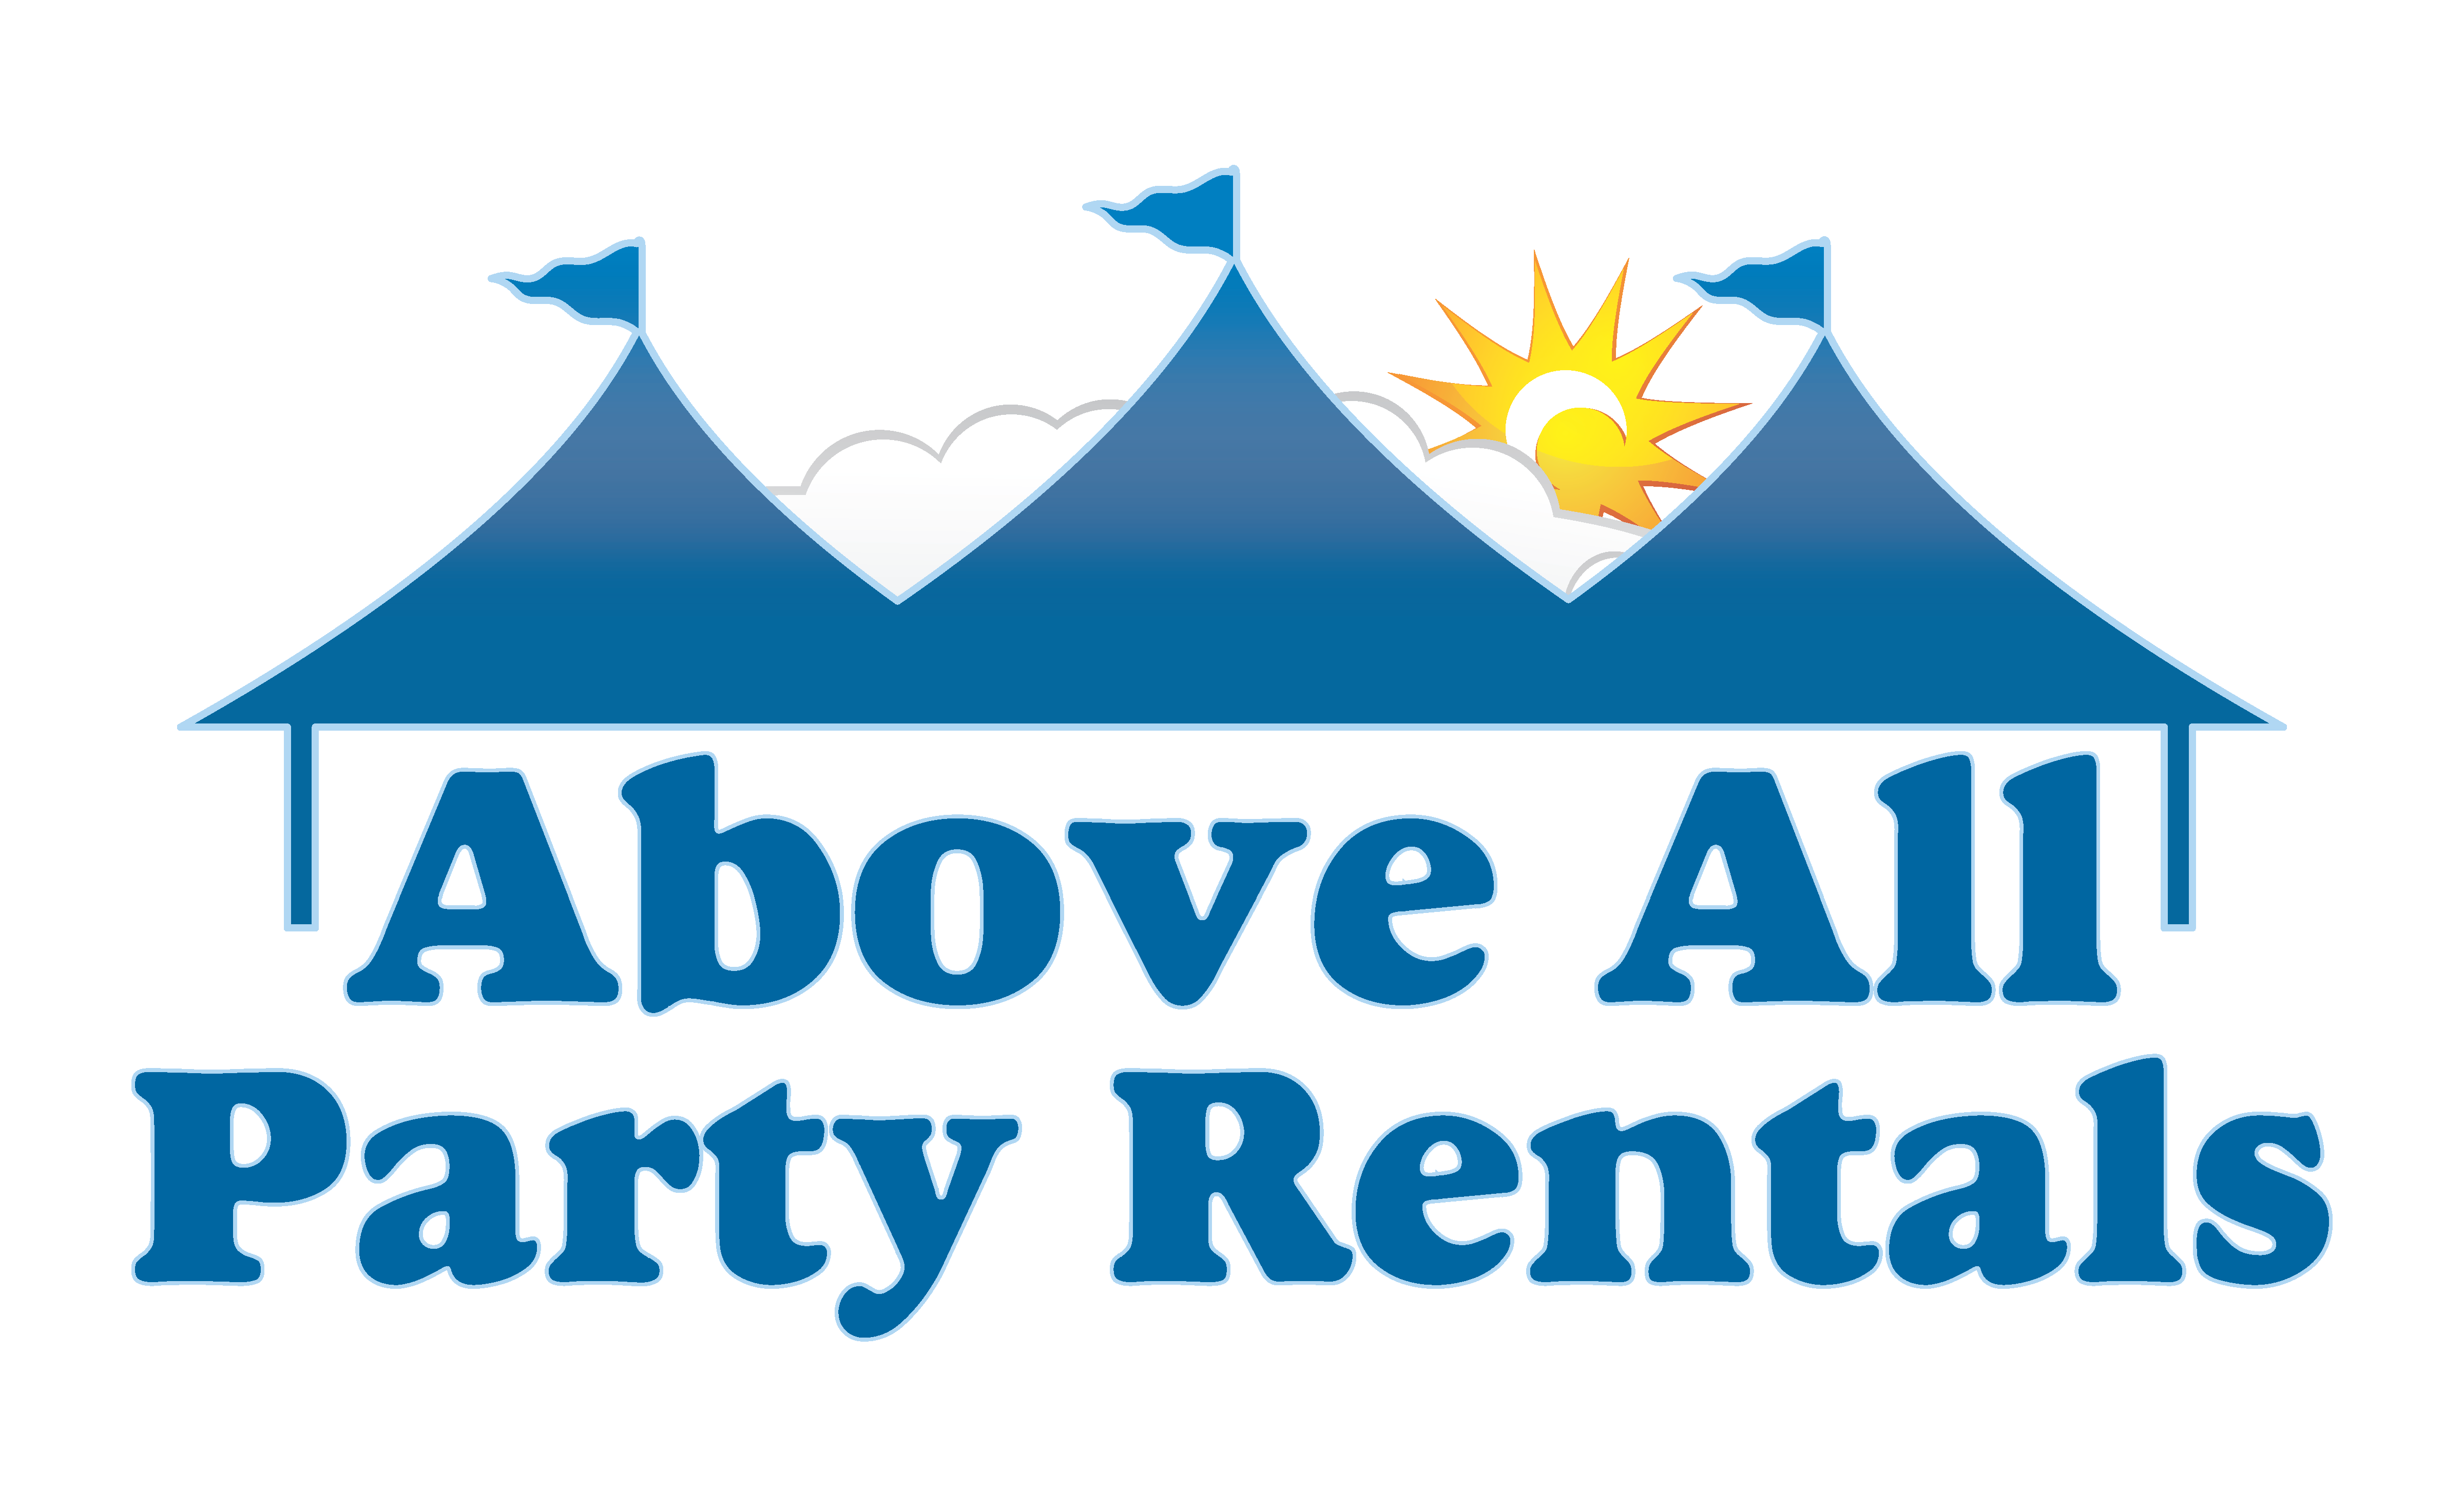 Above All Party Rentals (Platinum)